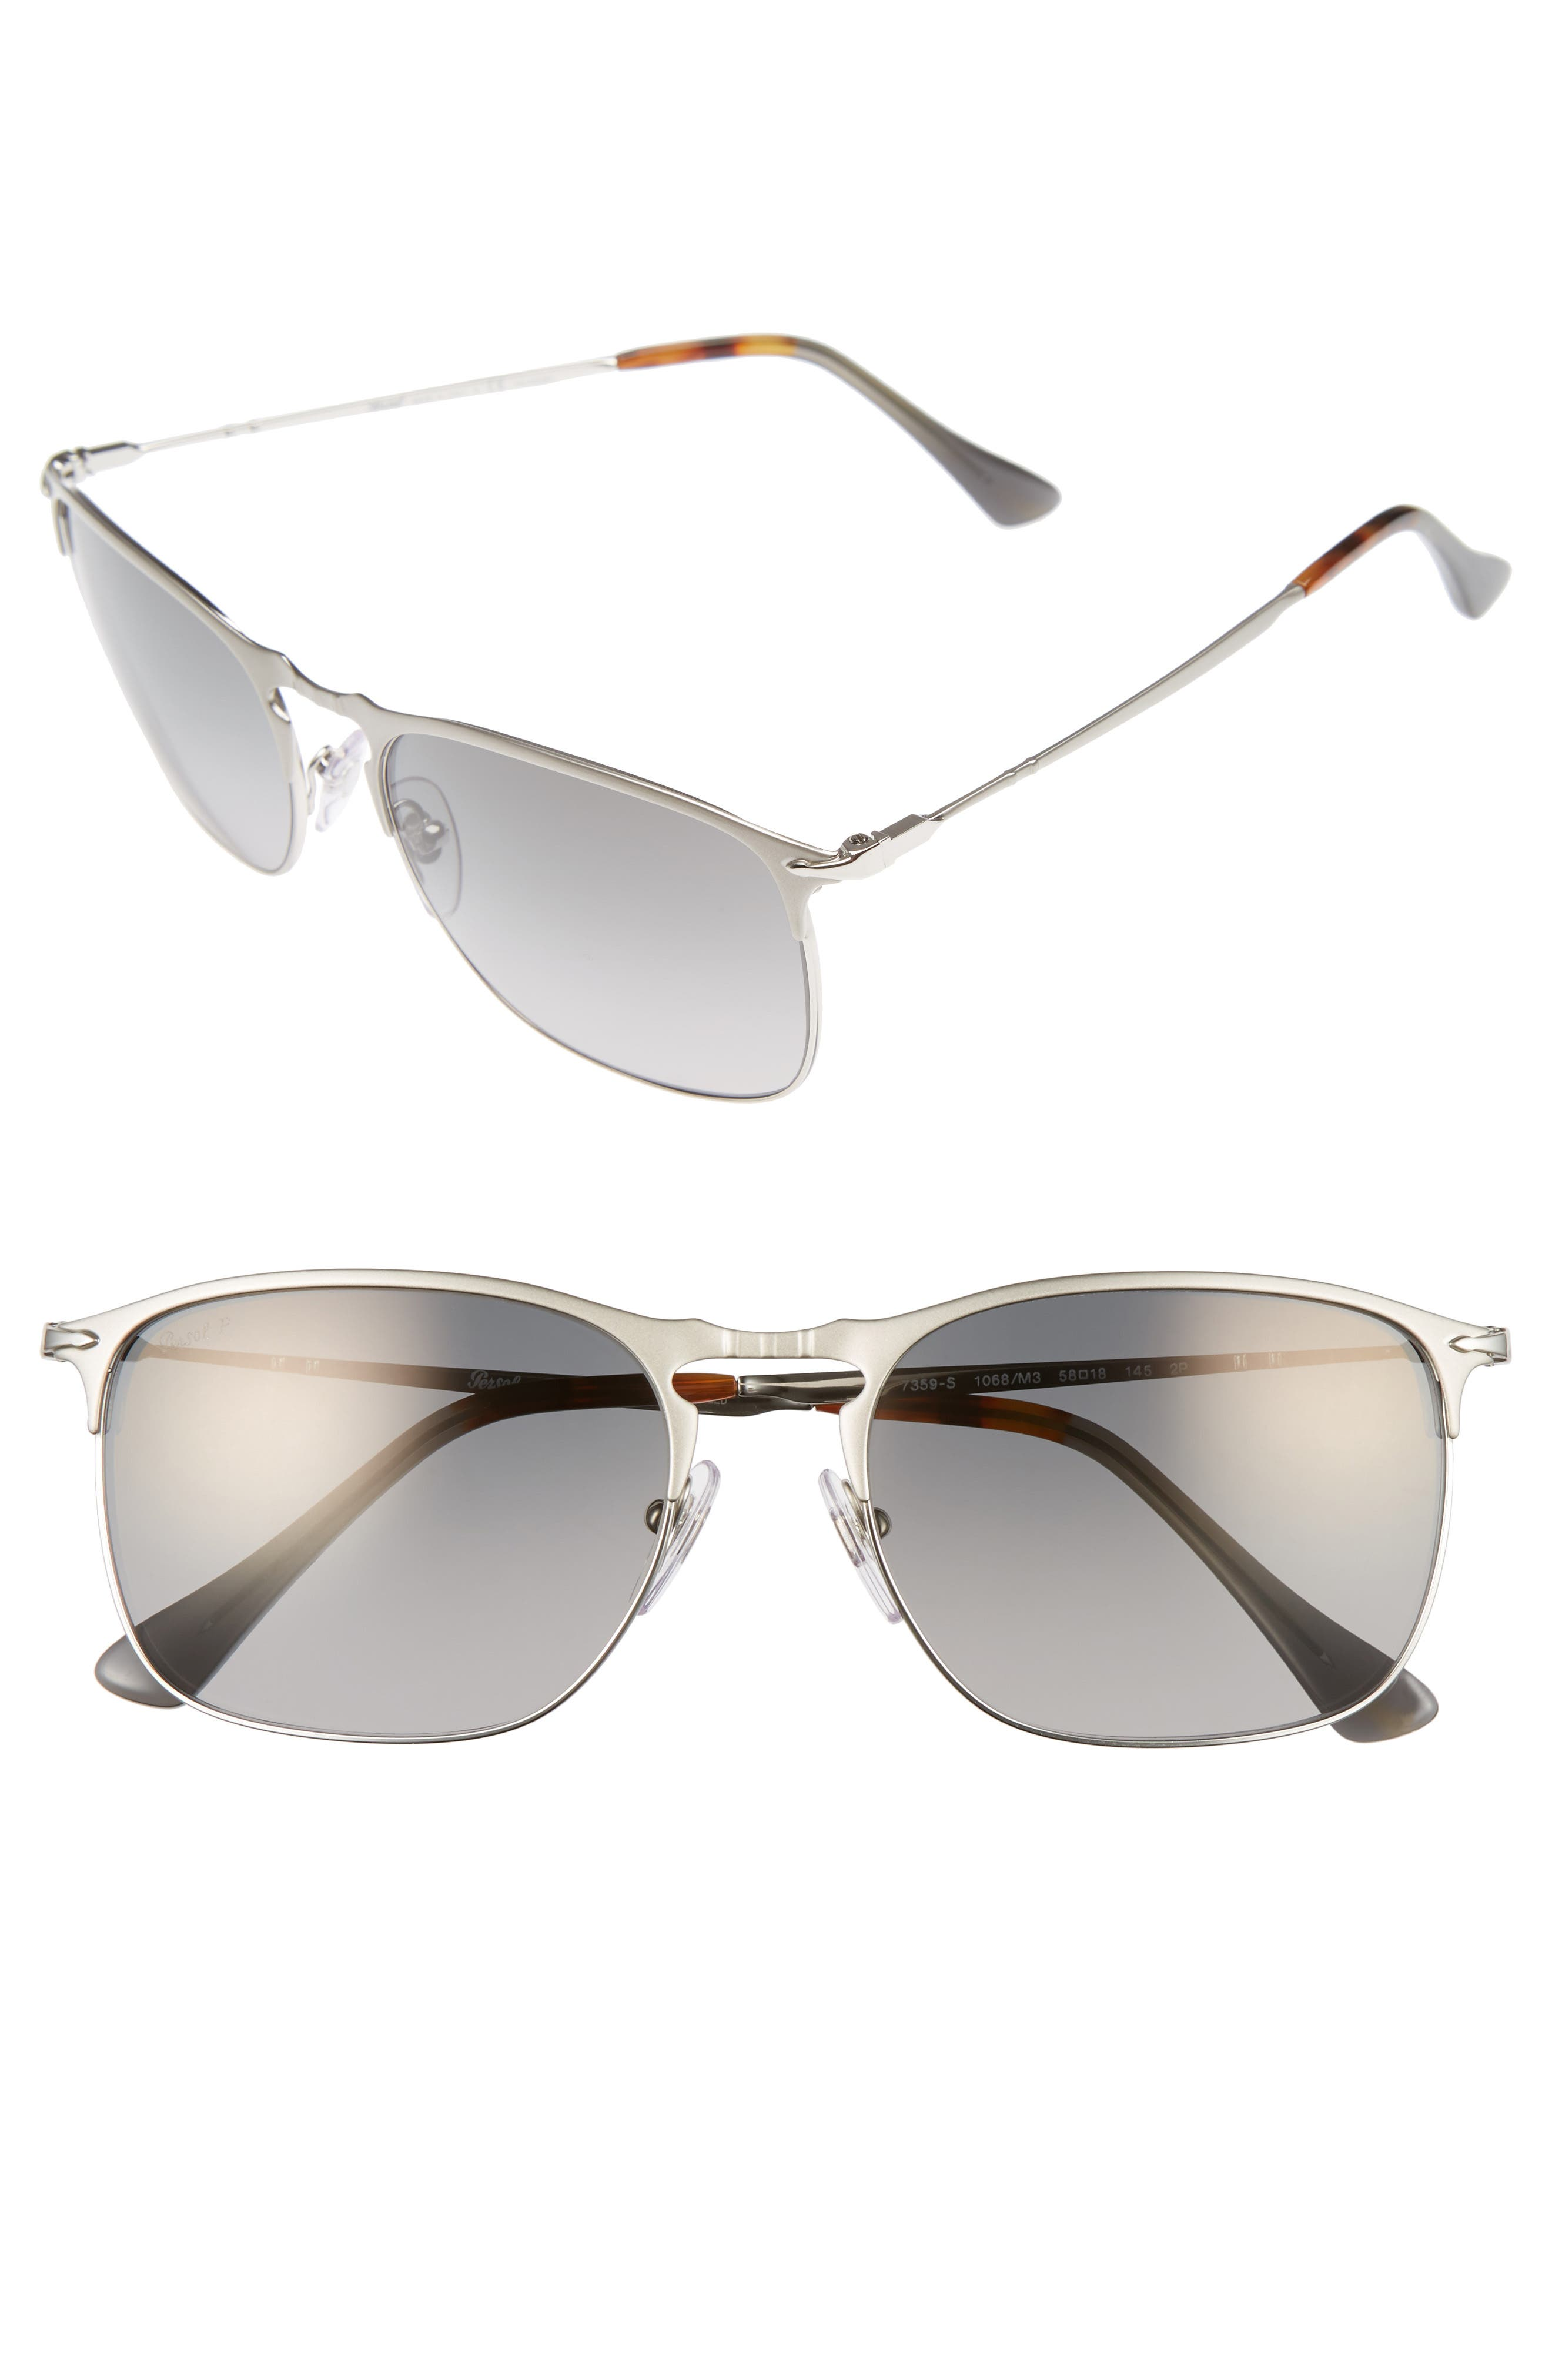 Evolution 58mm Polarized Aviator Sunglasses,                             Main thumbnail 1, color,                             Silver